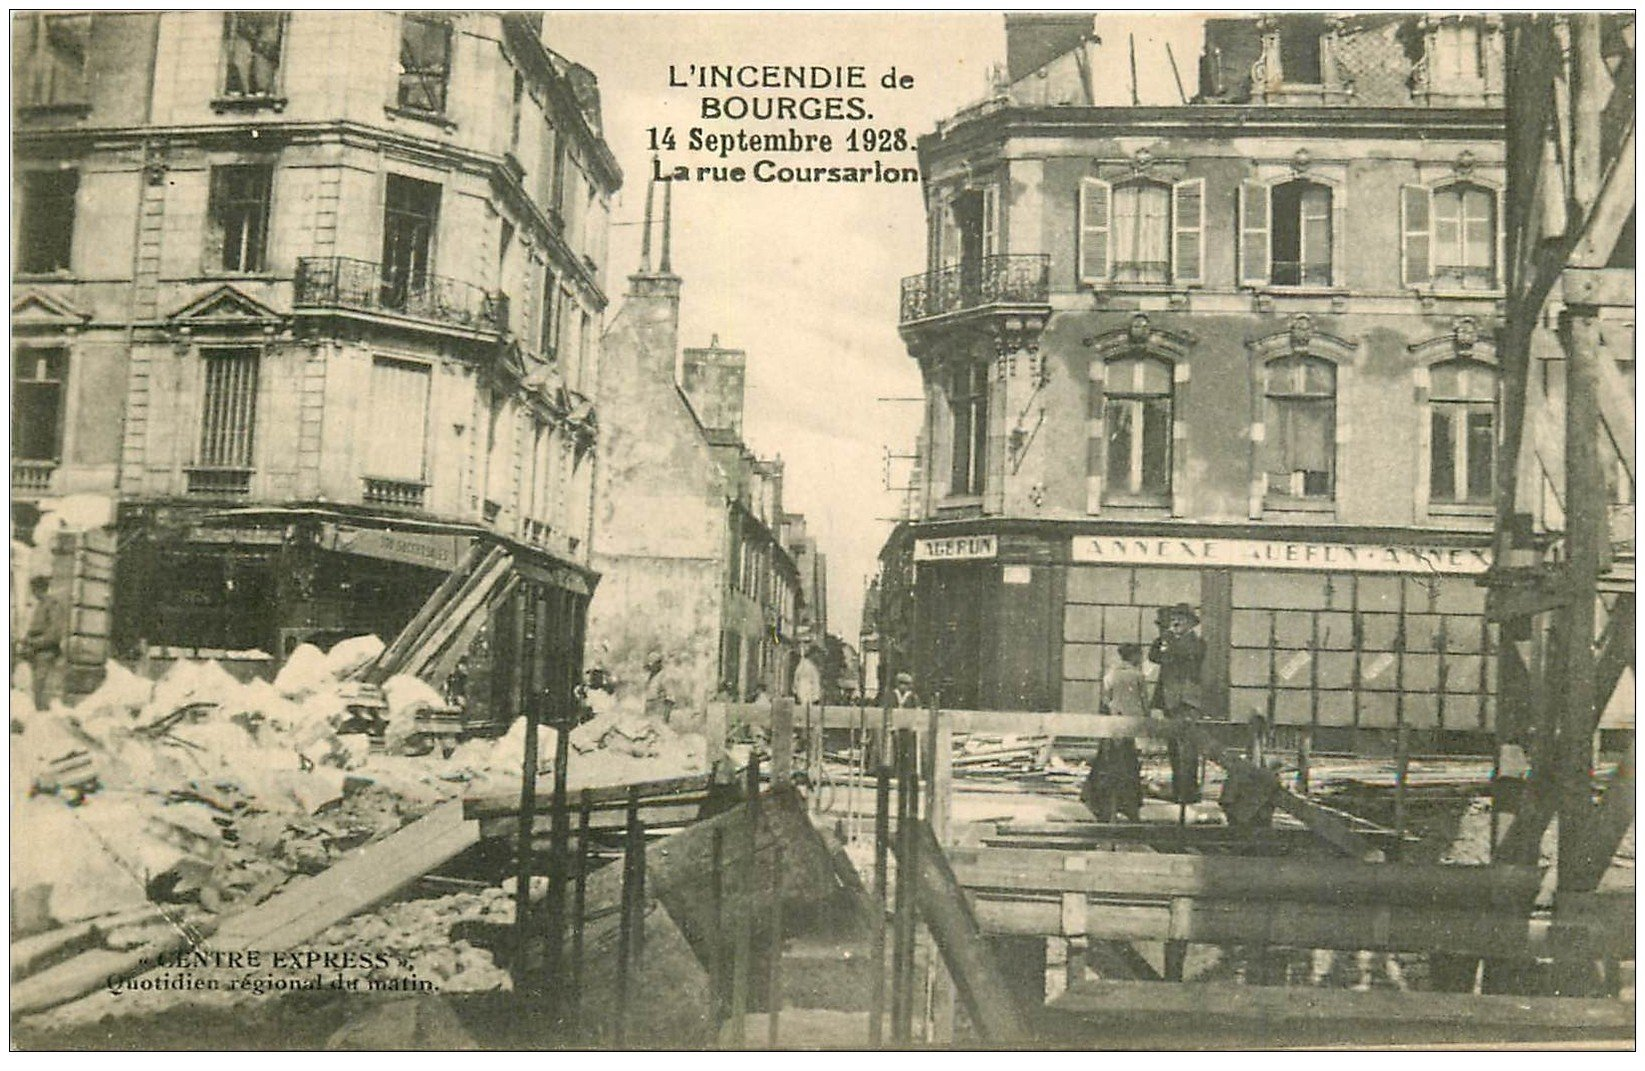 18 bourges incendie 1928 photographe rue coursarlon et annexe albrun. Black Bedroom Furniture Sets. Home Design Ideas